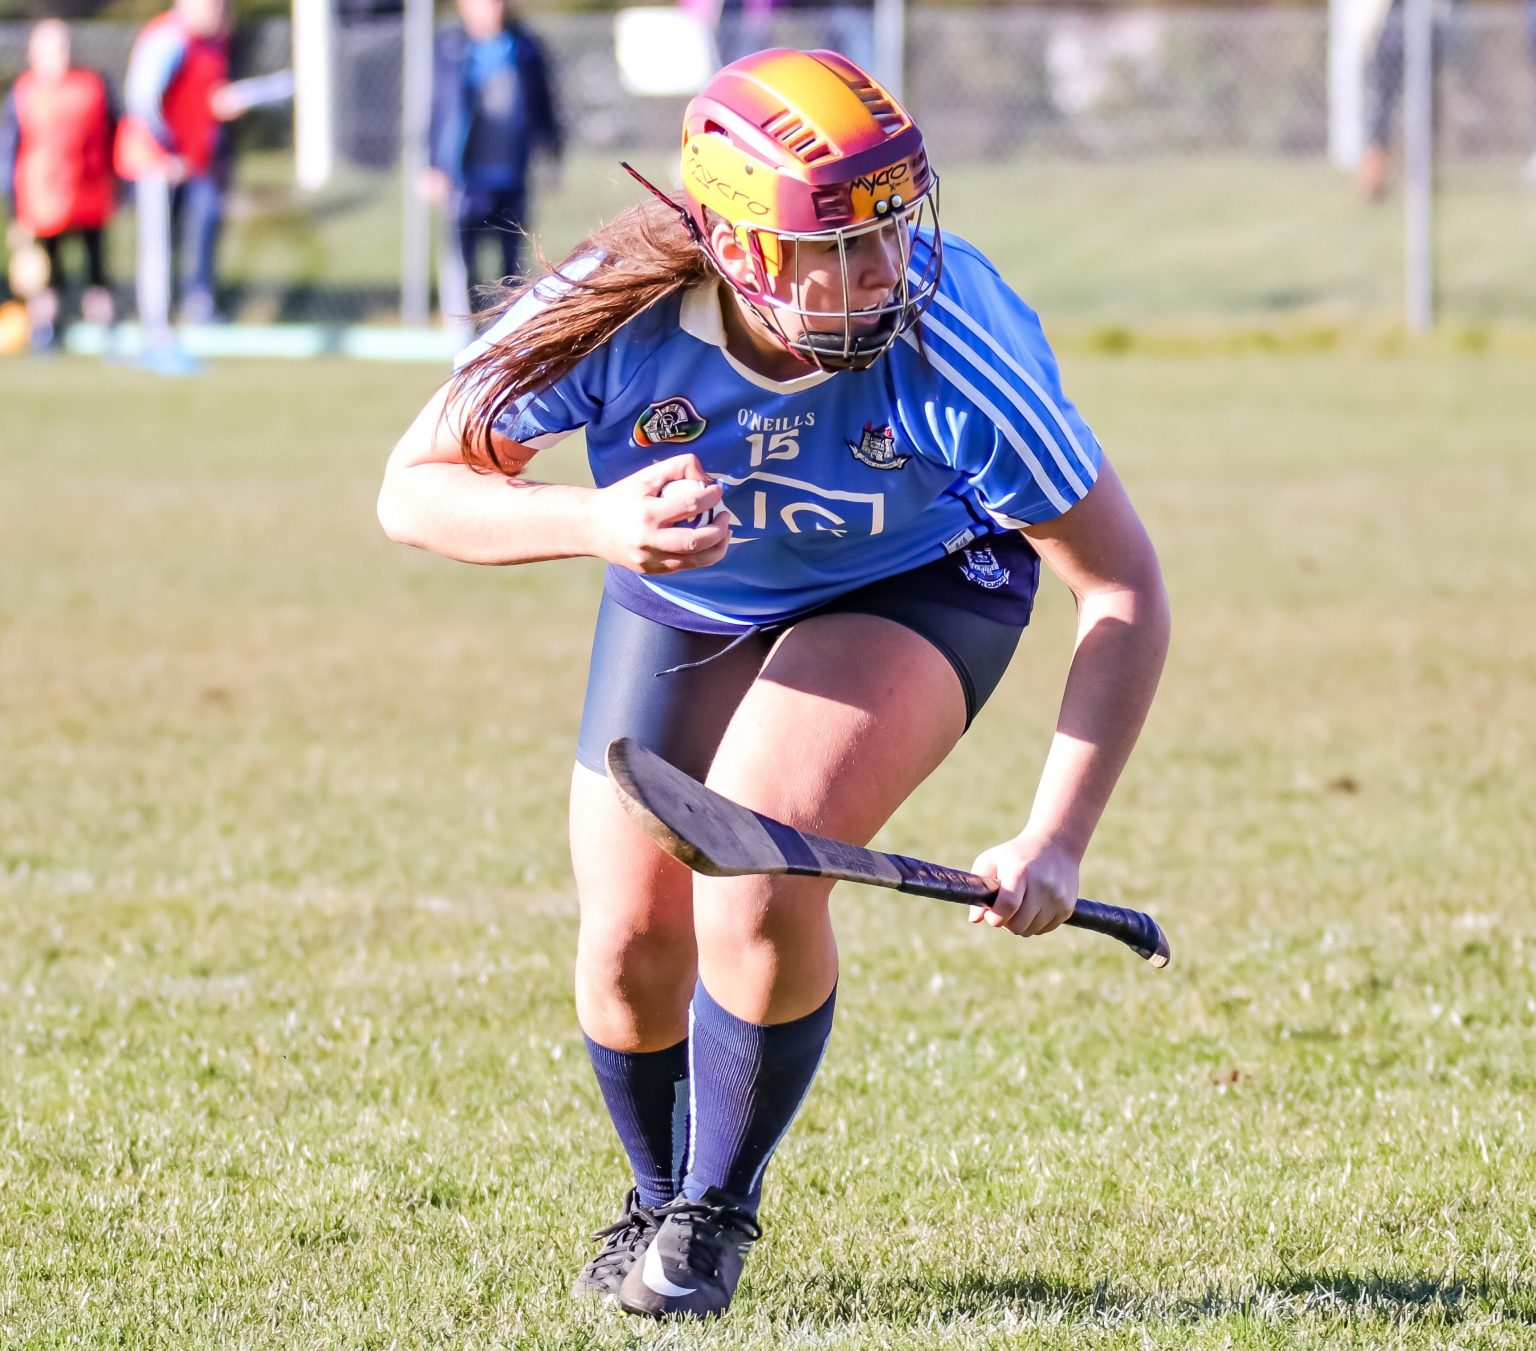 Dublin's Ciara Carolan Will Have To For Her Sides First Home Game Of The Season As All Camogie League Fixtures Postponed The Weekend Due To the Adverse Weather